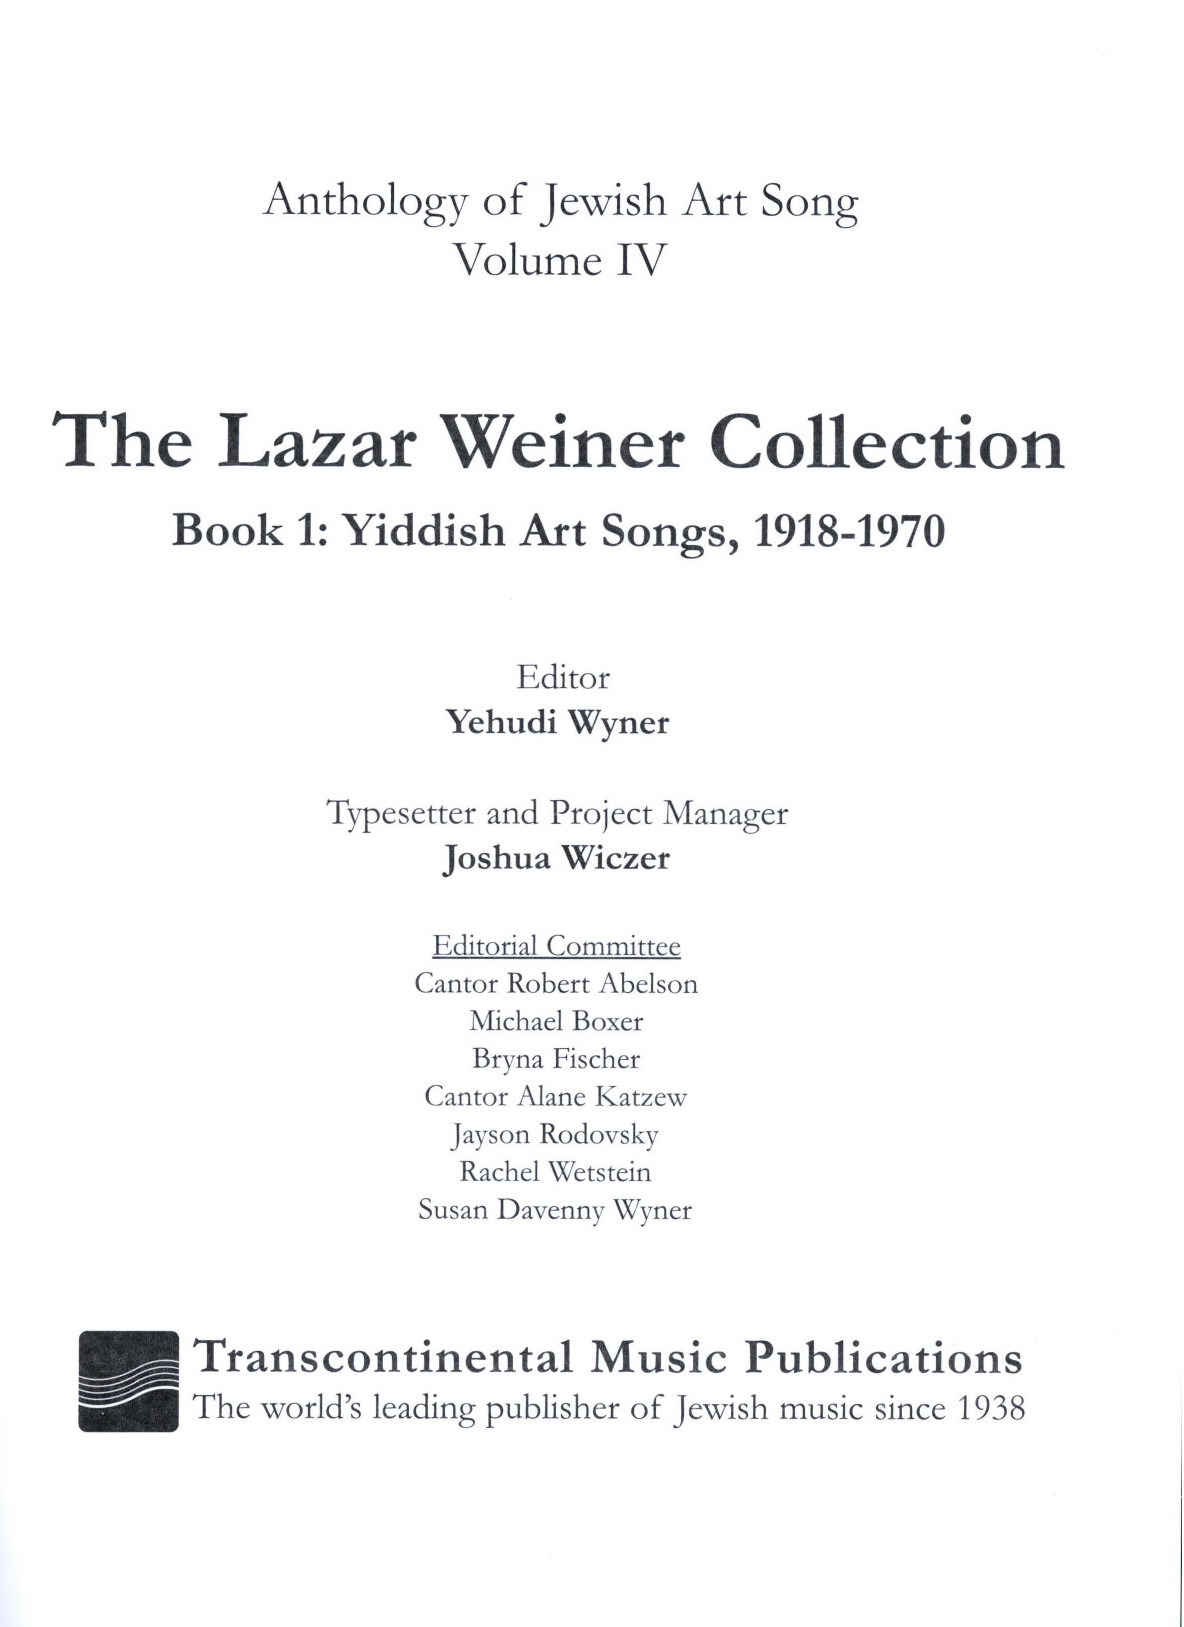 The Lazar Weiner Collection - Book 1: Yiddish Art Songs, 1918-1970 Partituras Digitales